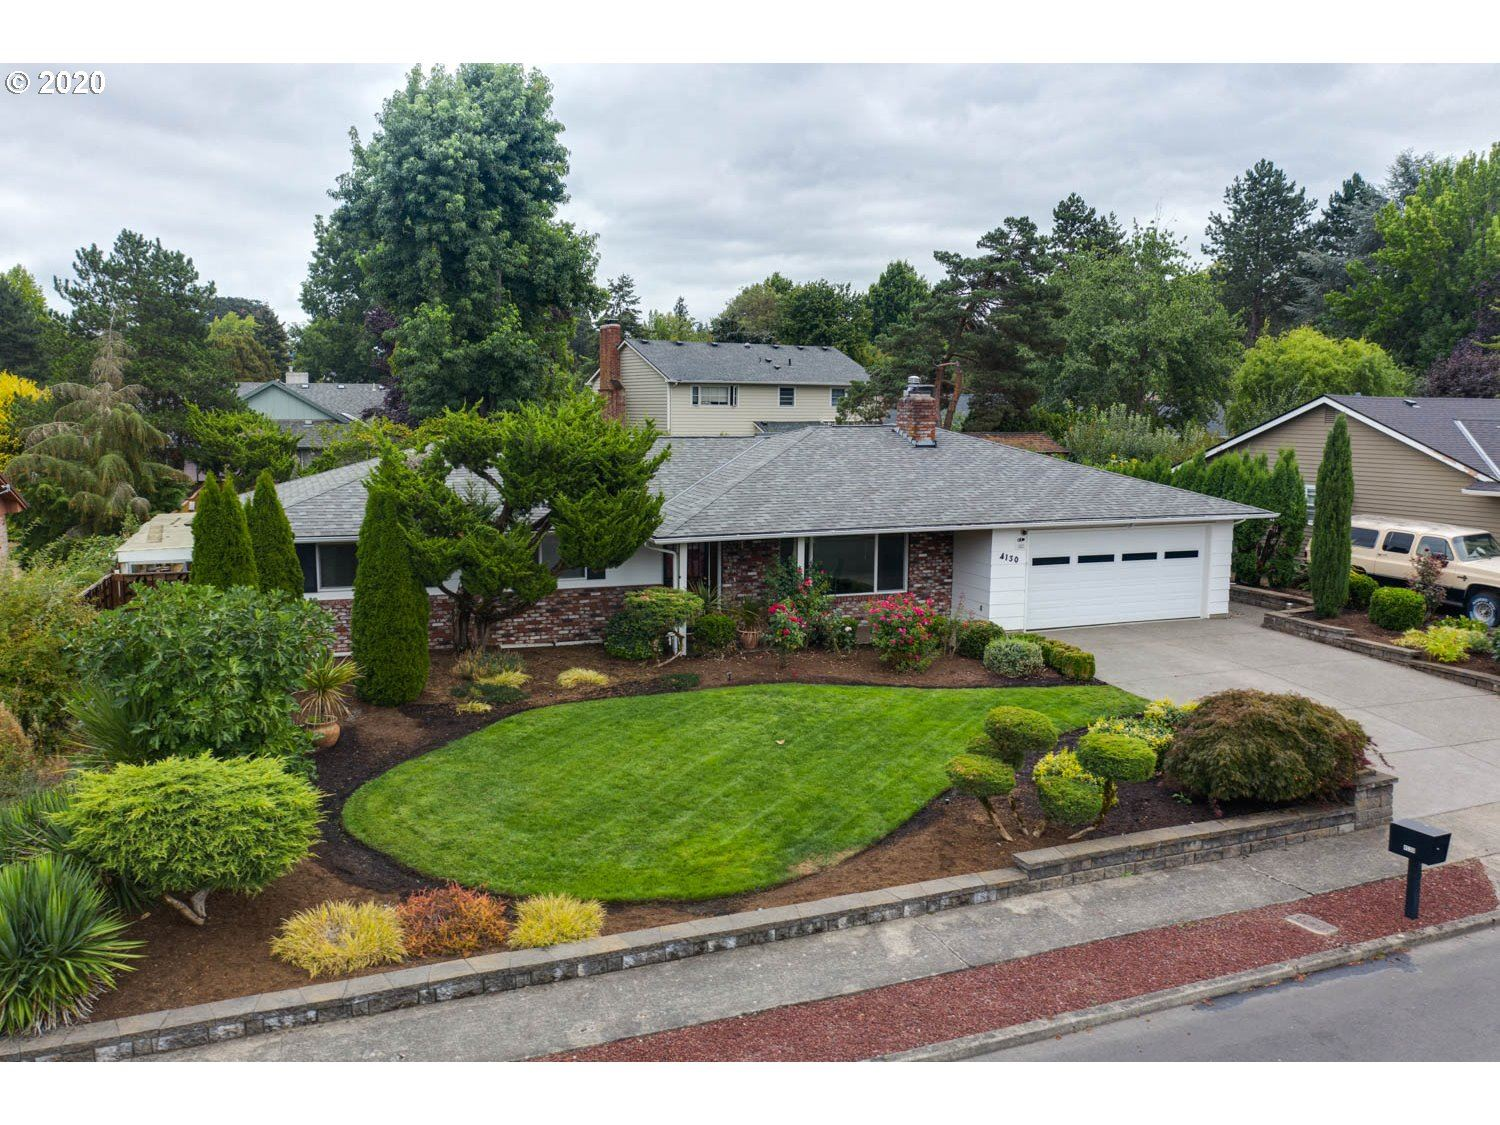 4130 NW 192ND AVE, Portland, OR 97229 - MLS#: 20473760